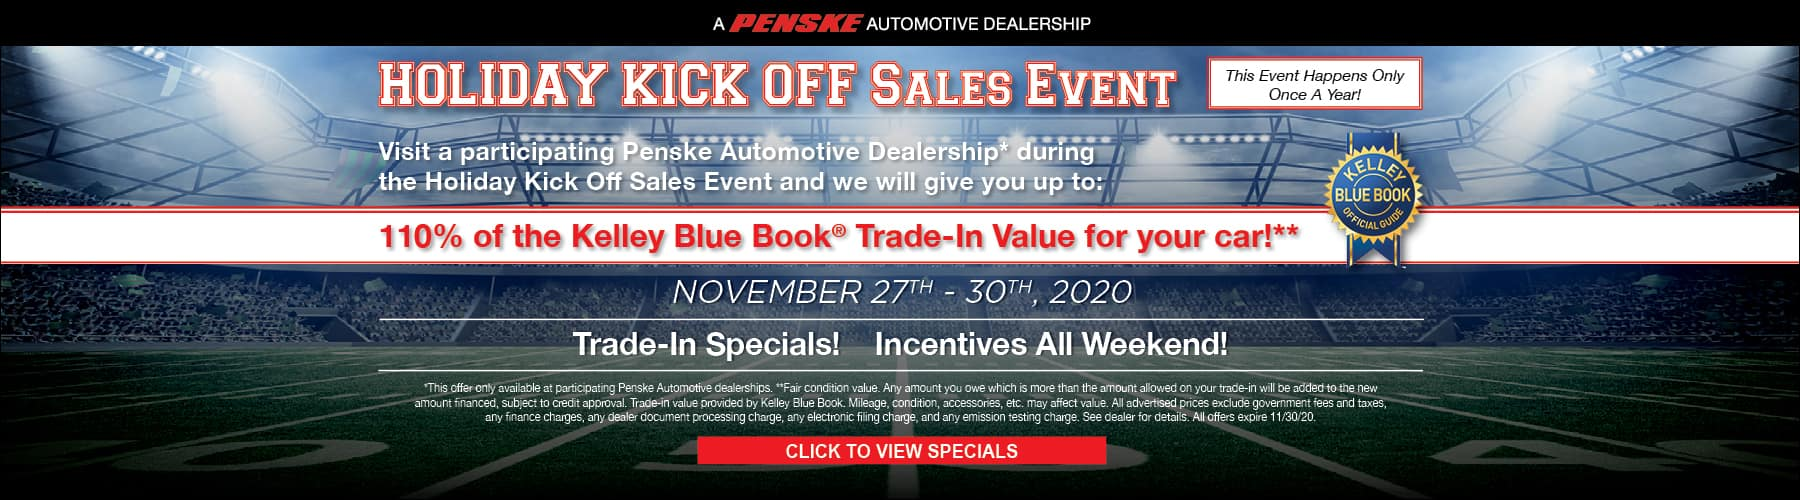 Holiday Kick Off Sales Event